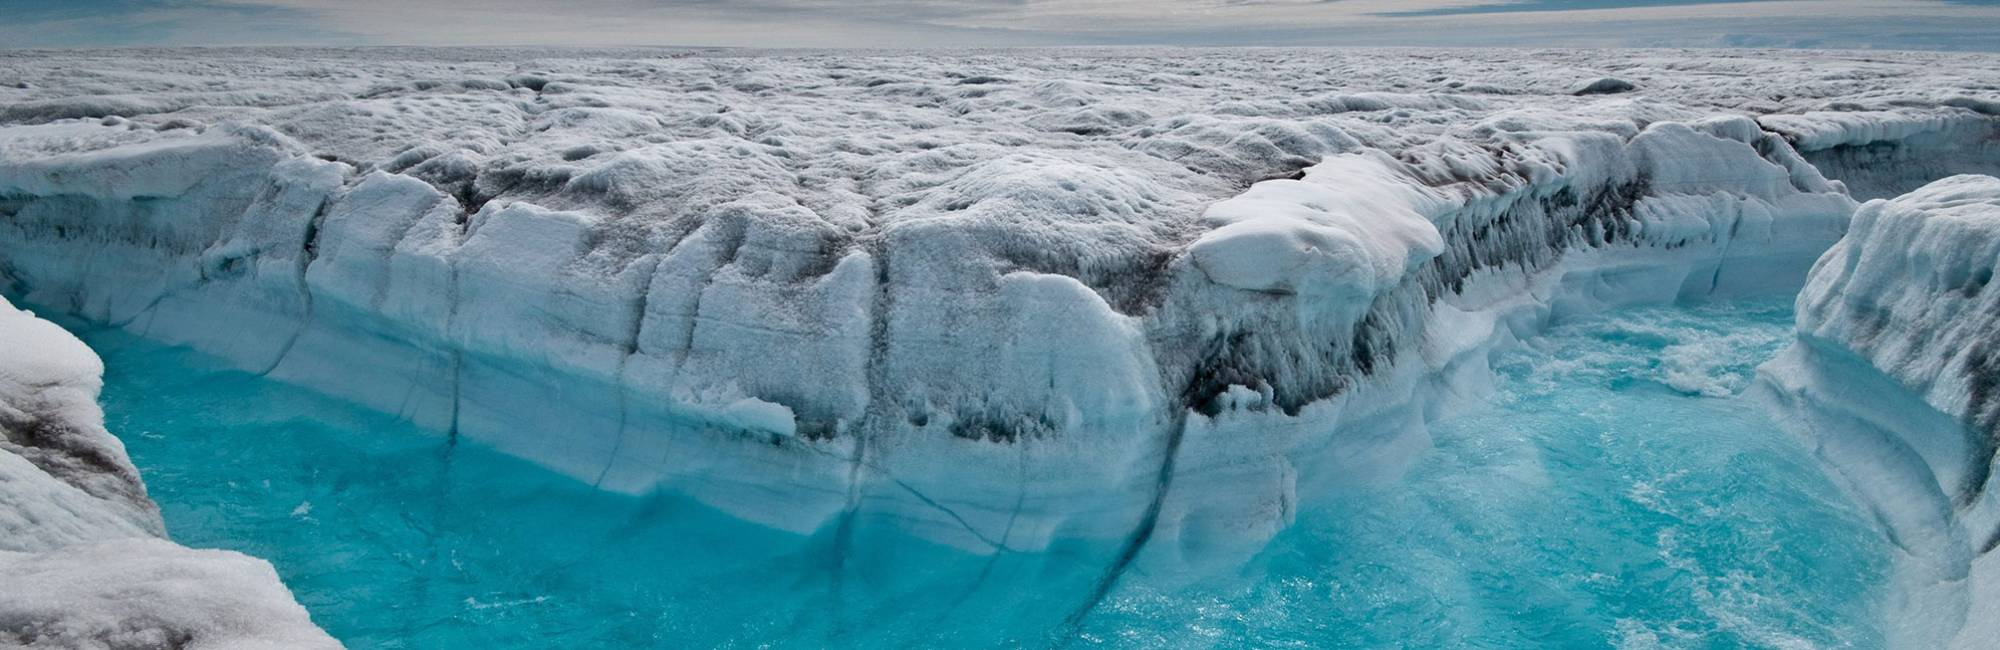 Tributary formed within a melting glacier